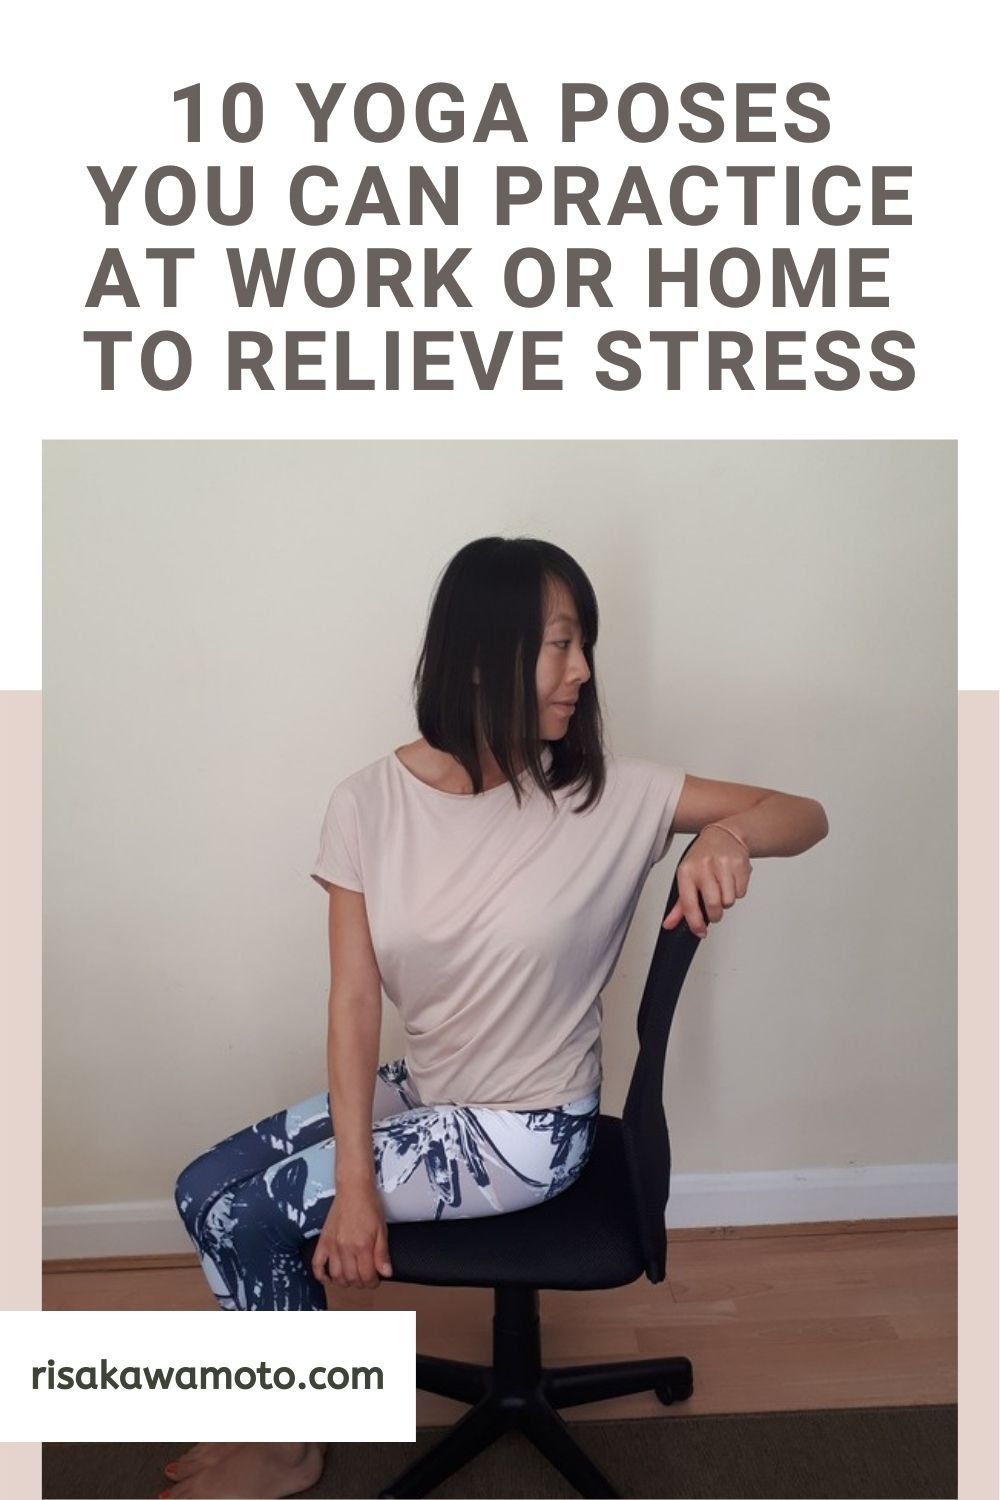 Yoga Poses to Relieve Stress at Work